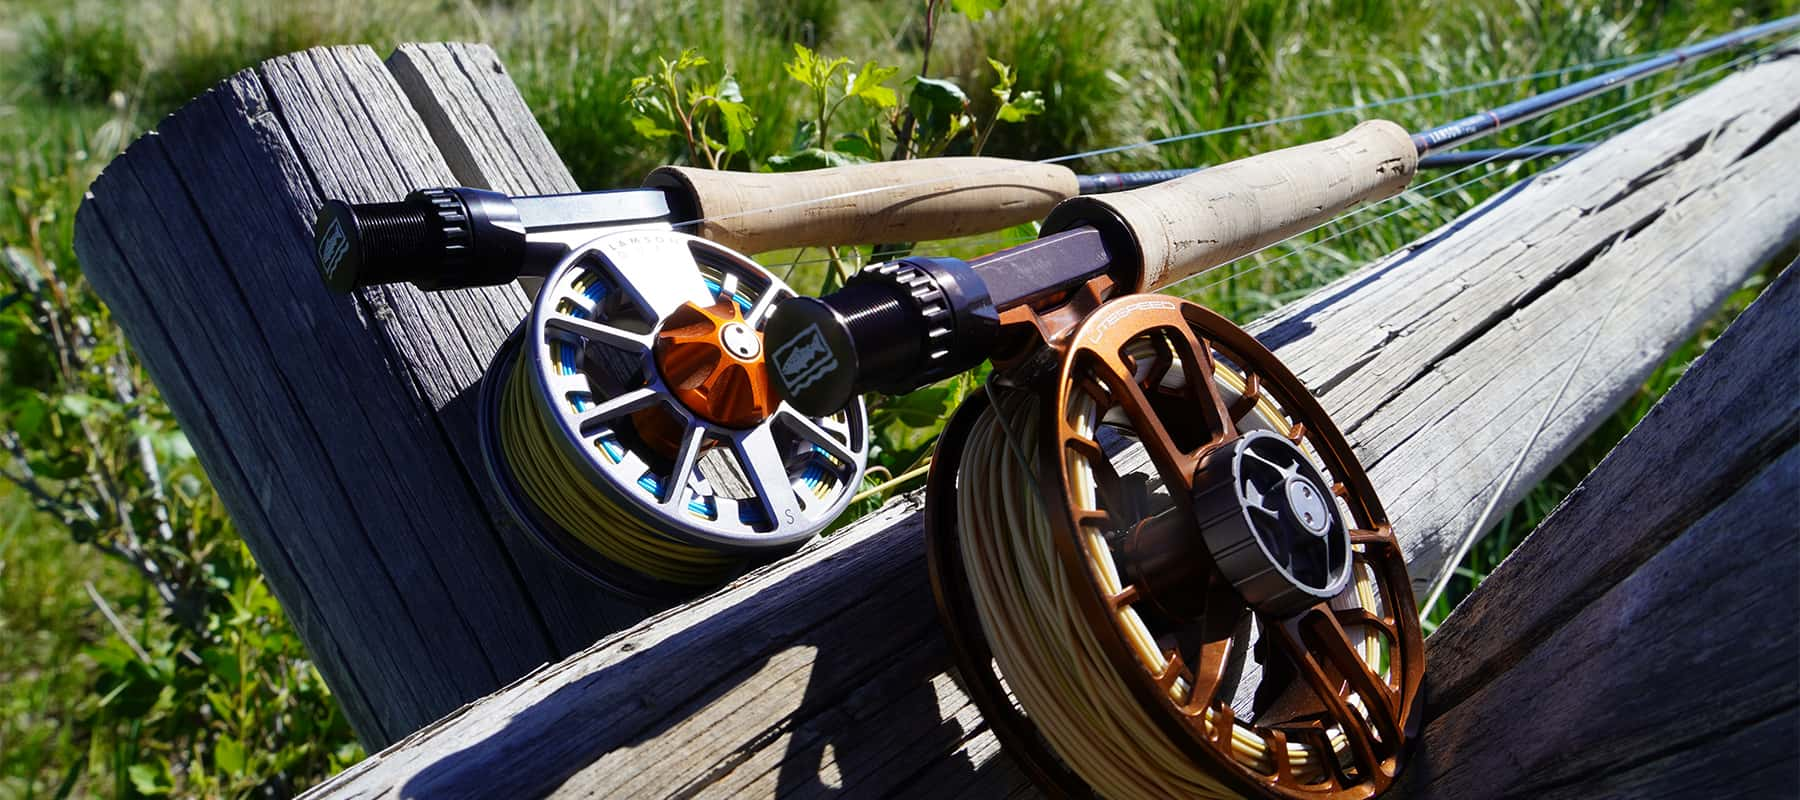 Lamson Fly Reels | Waterworks Lamson Fly Reels are born in Idaho